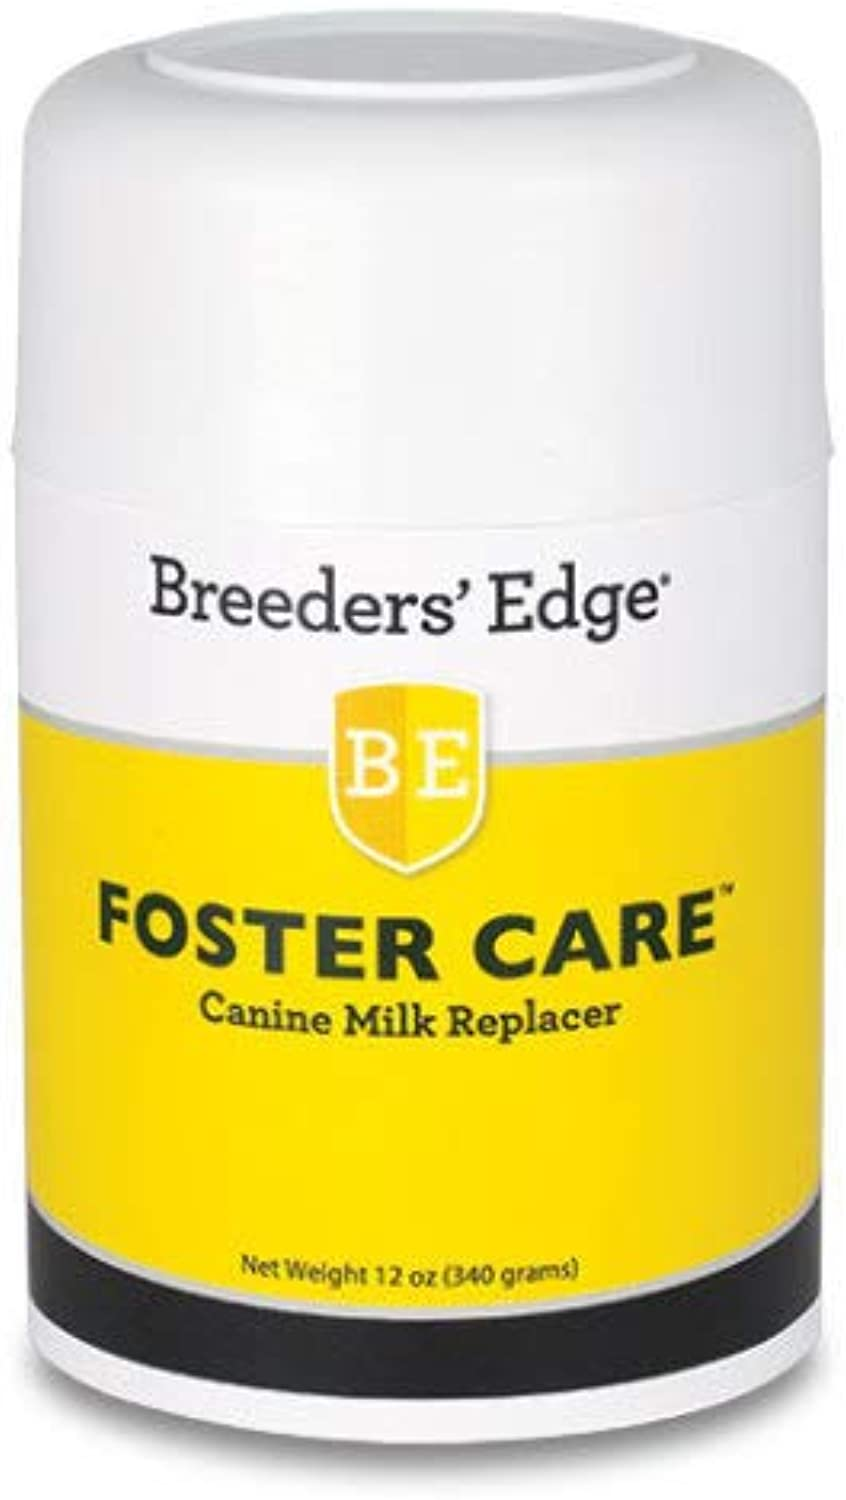 Breeders Edge Foster Care Canine Powdered Milk Replacer 12oz for puppies & dogs by Revival Animal Health